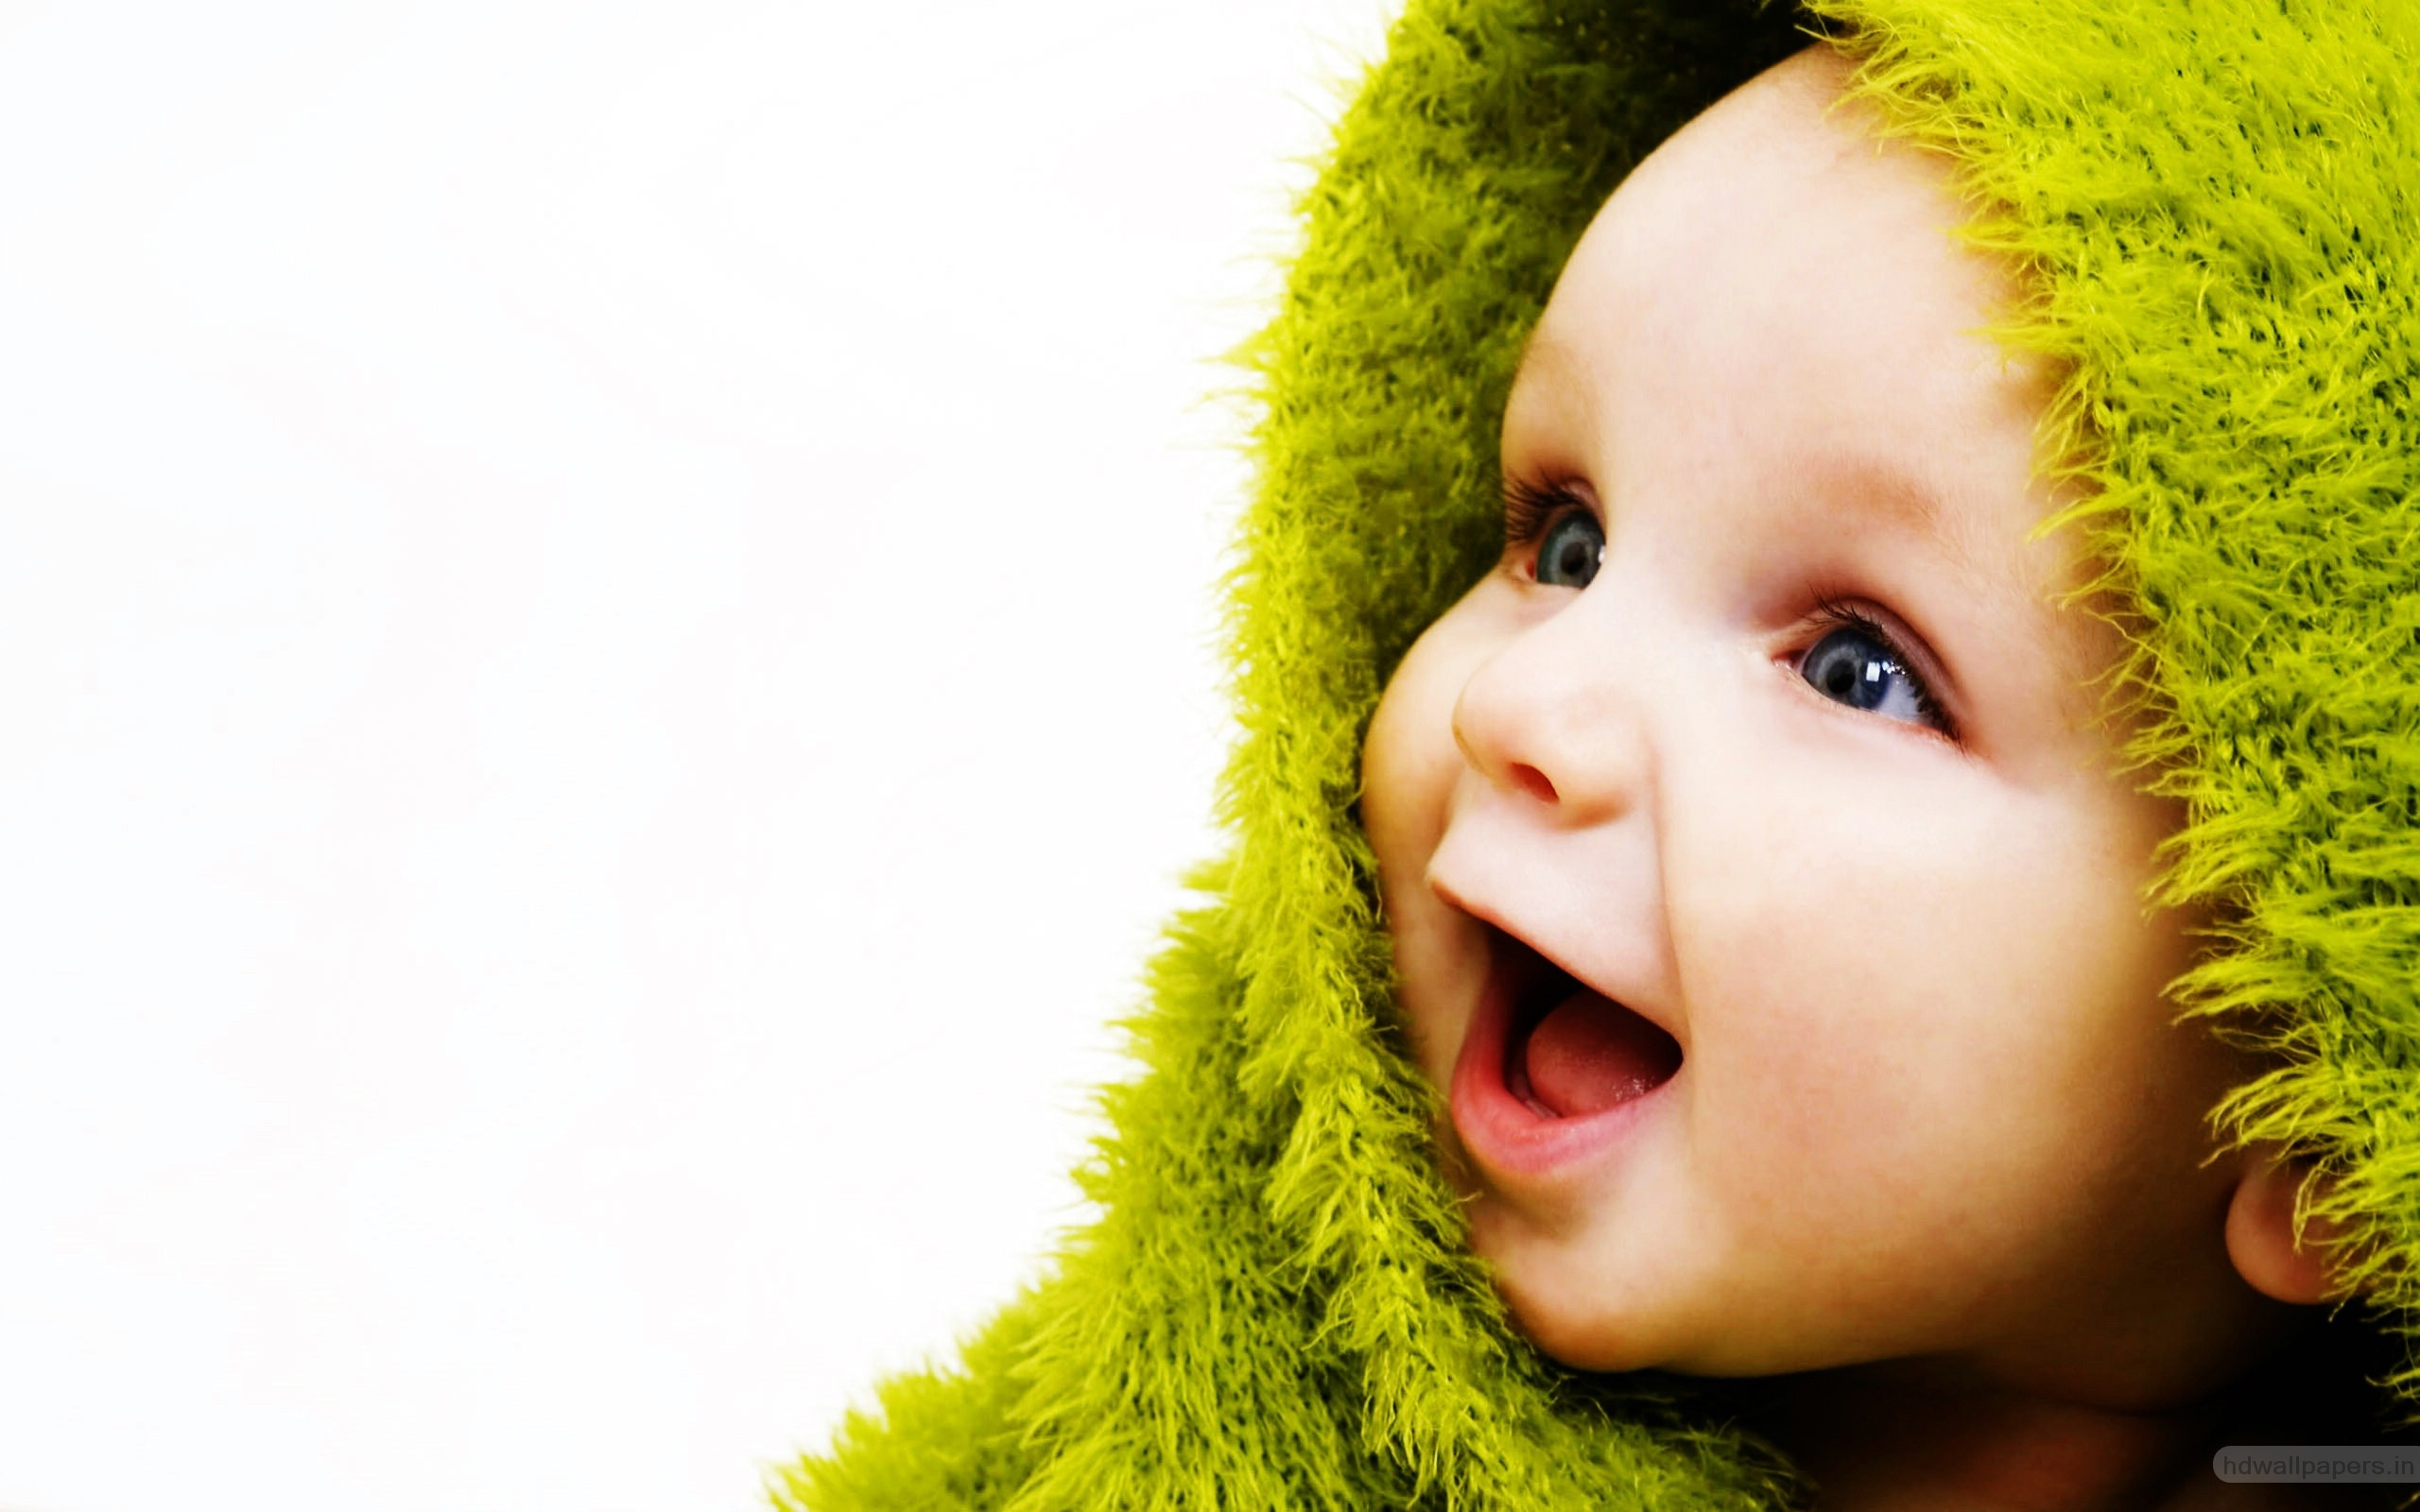 Images Of Cute Babies Wallpaper Free Download Little Cute Baby Wallpapers In Jpg Format For Free Download